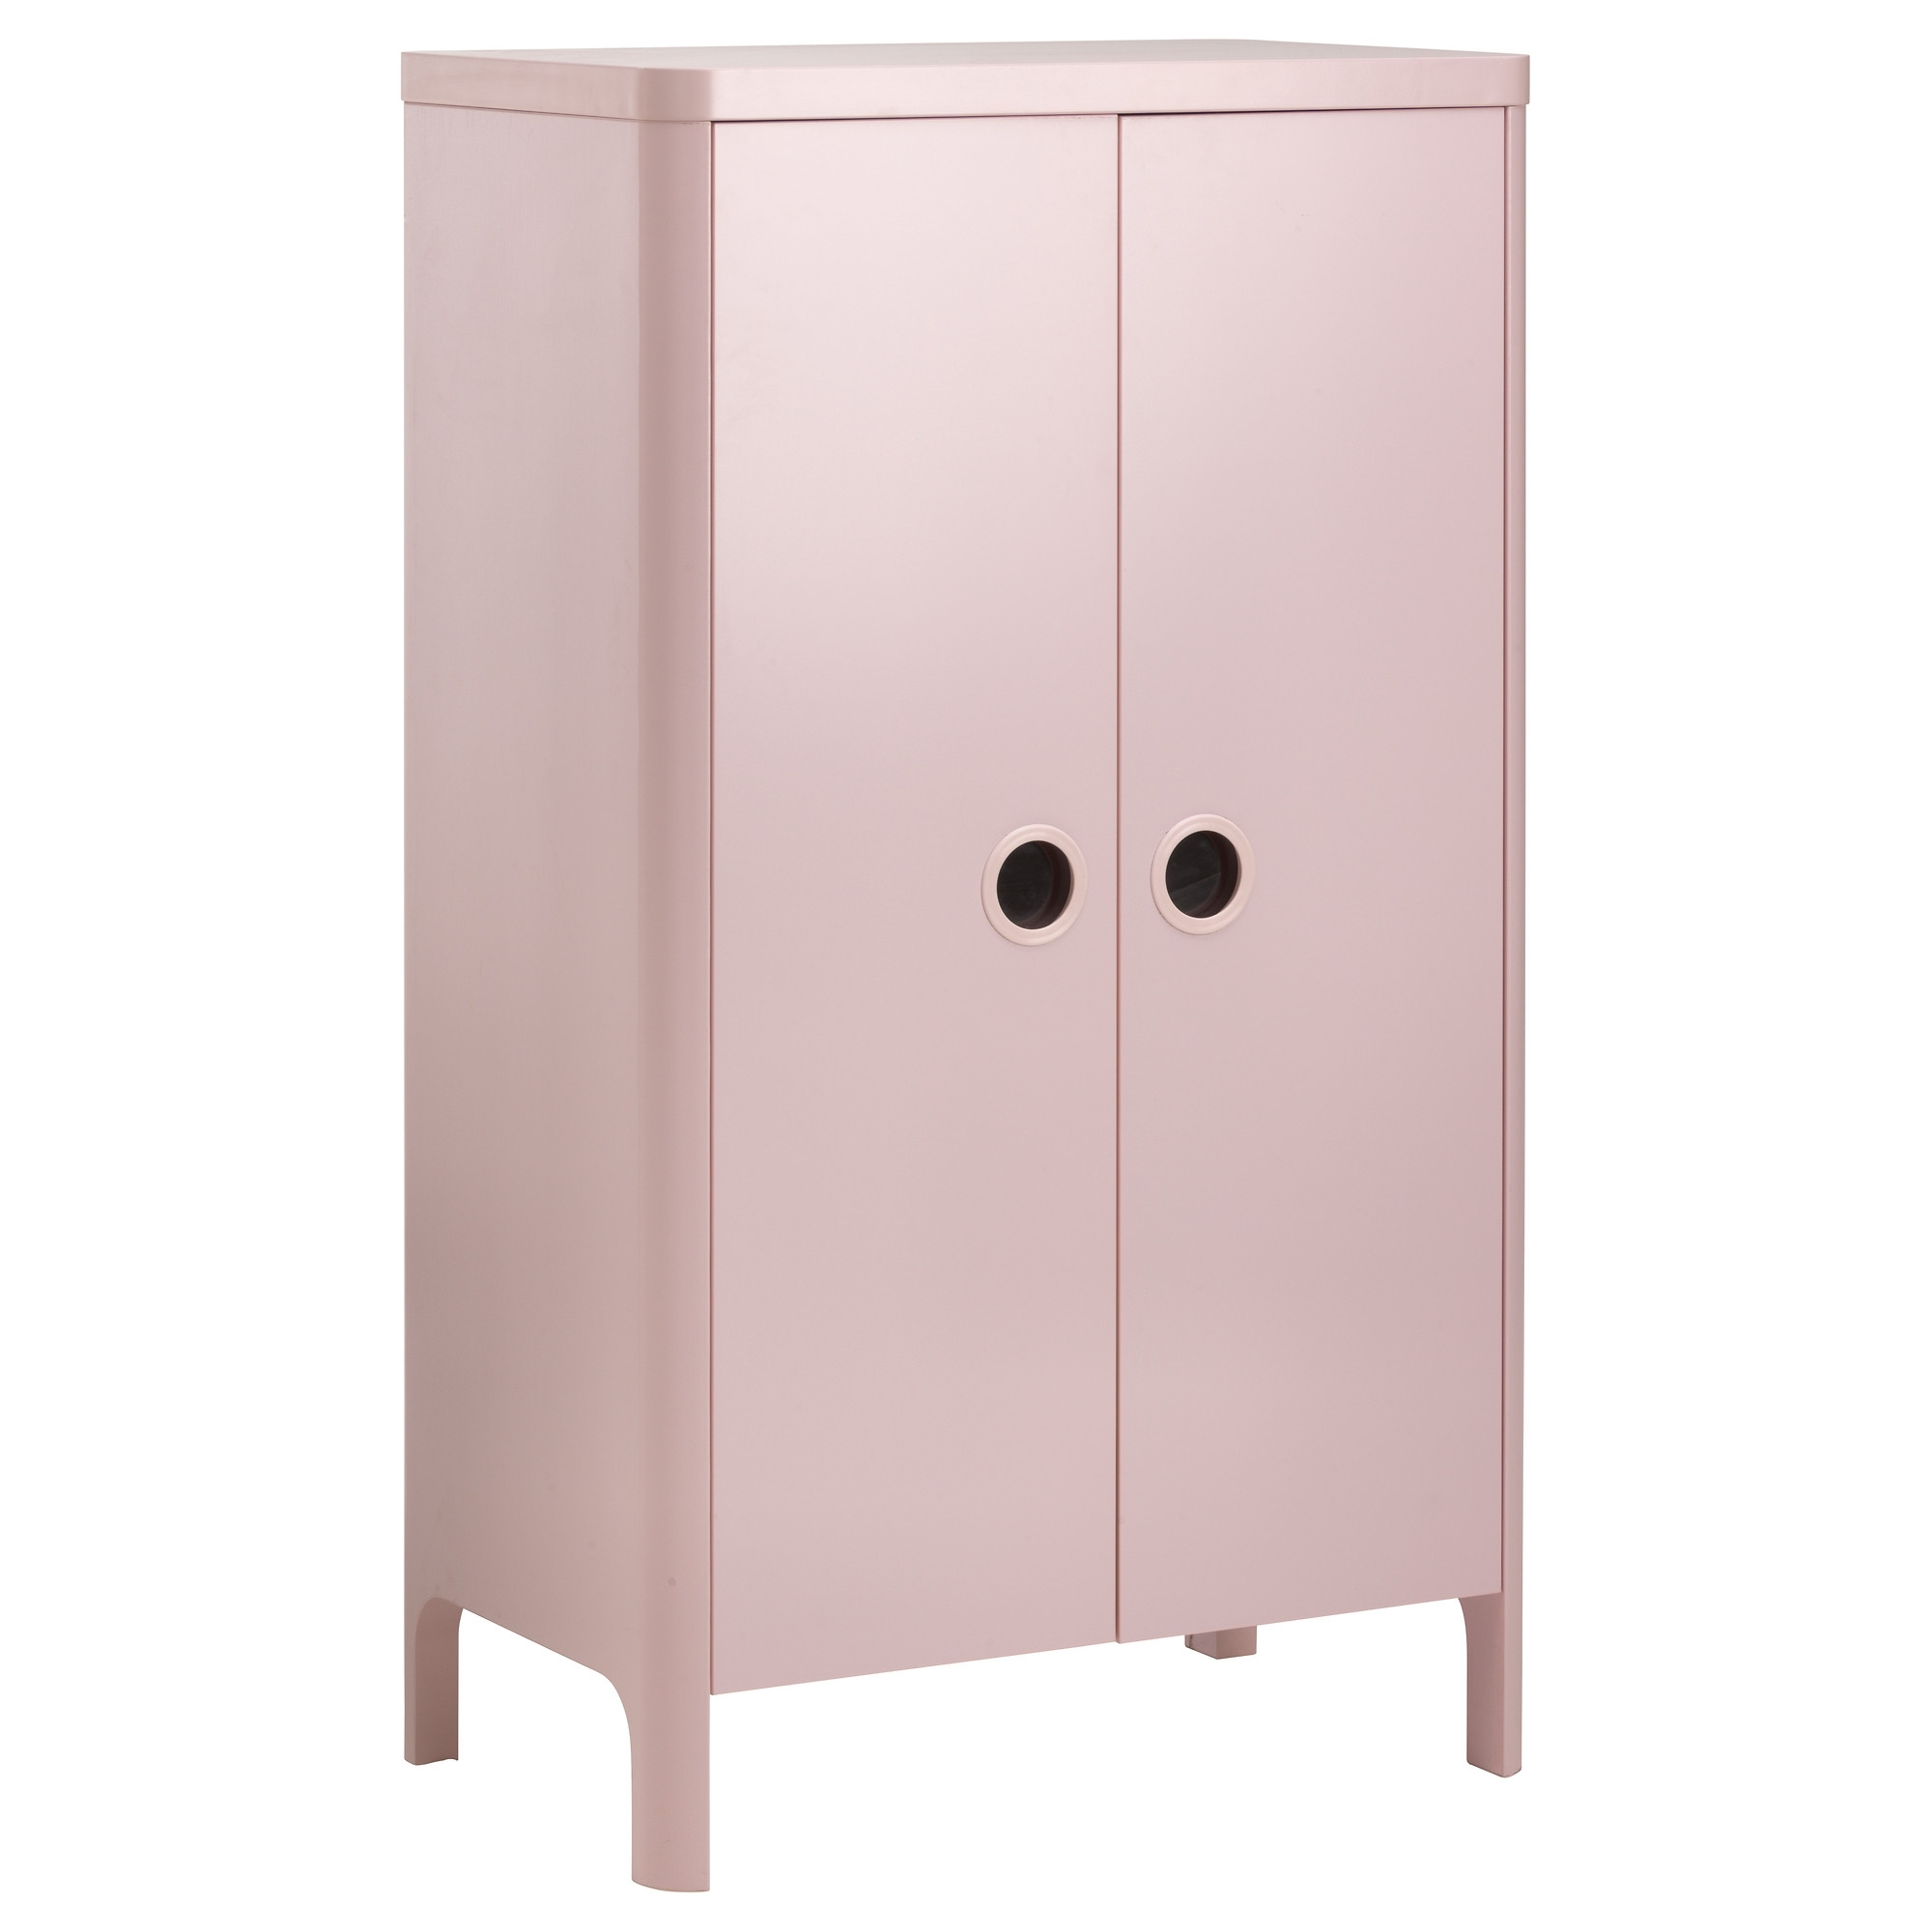 Busunge Wardrobe Light Pink 80X139 Cm – Ikea With Best And Newest Childrens Pink Wardrobes (View 2 of 15)